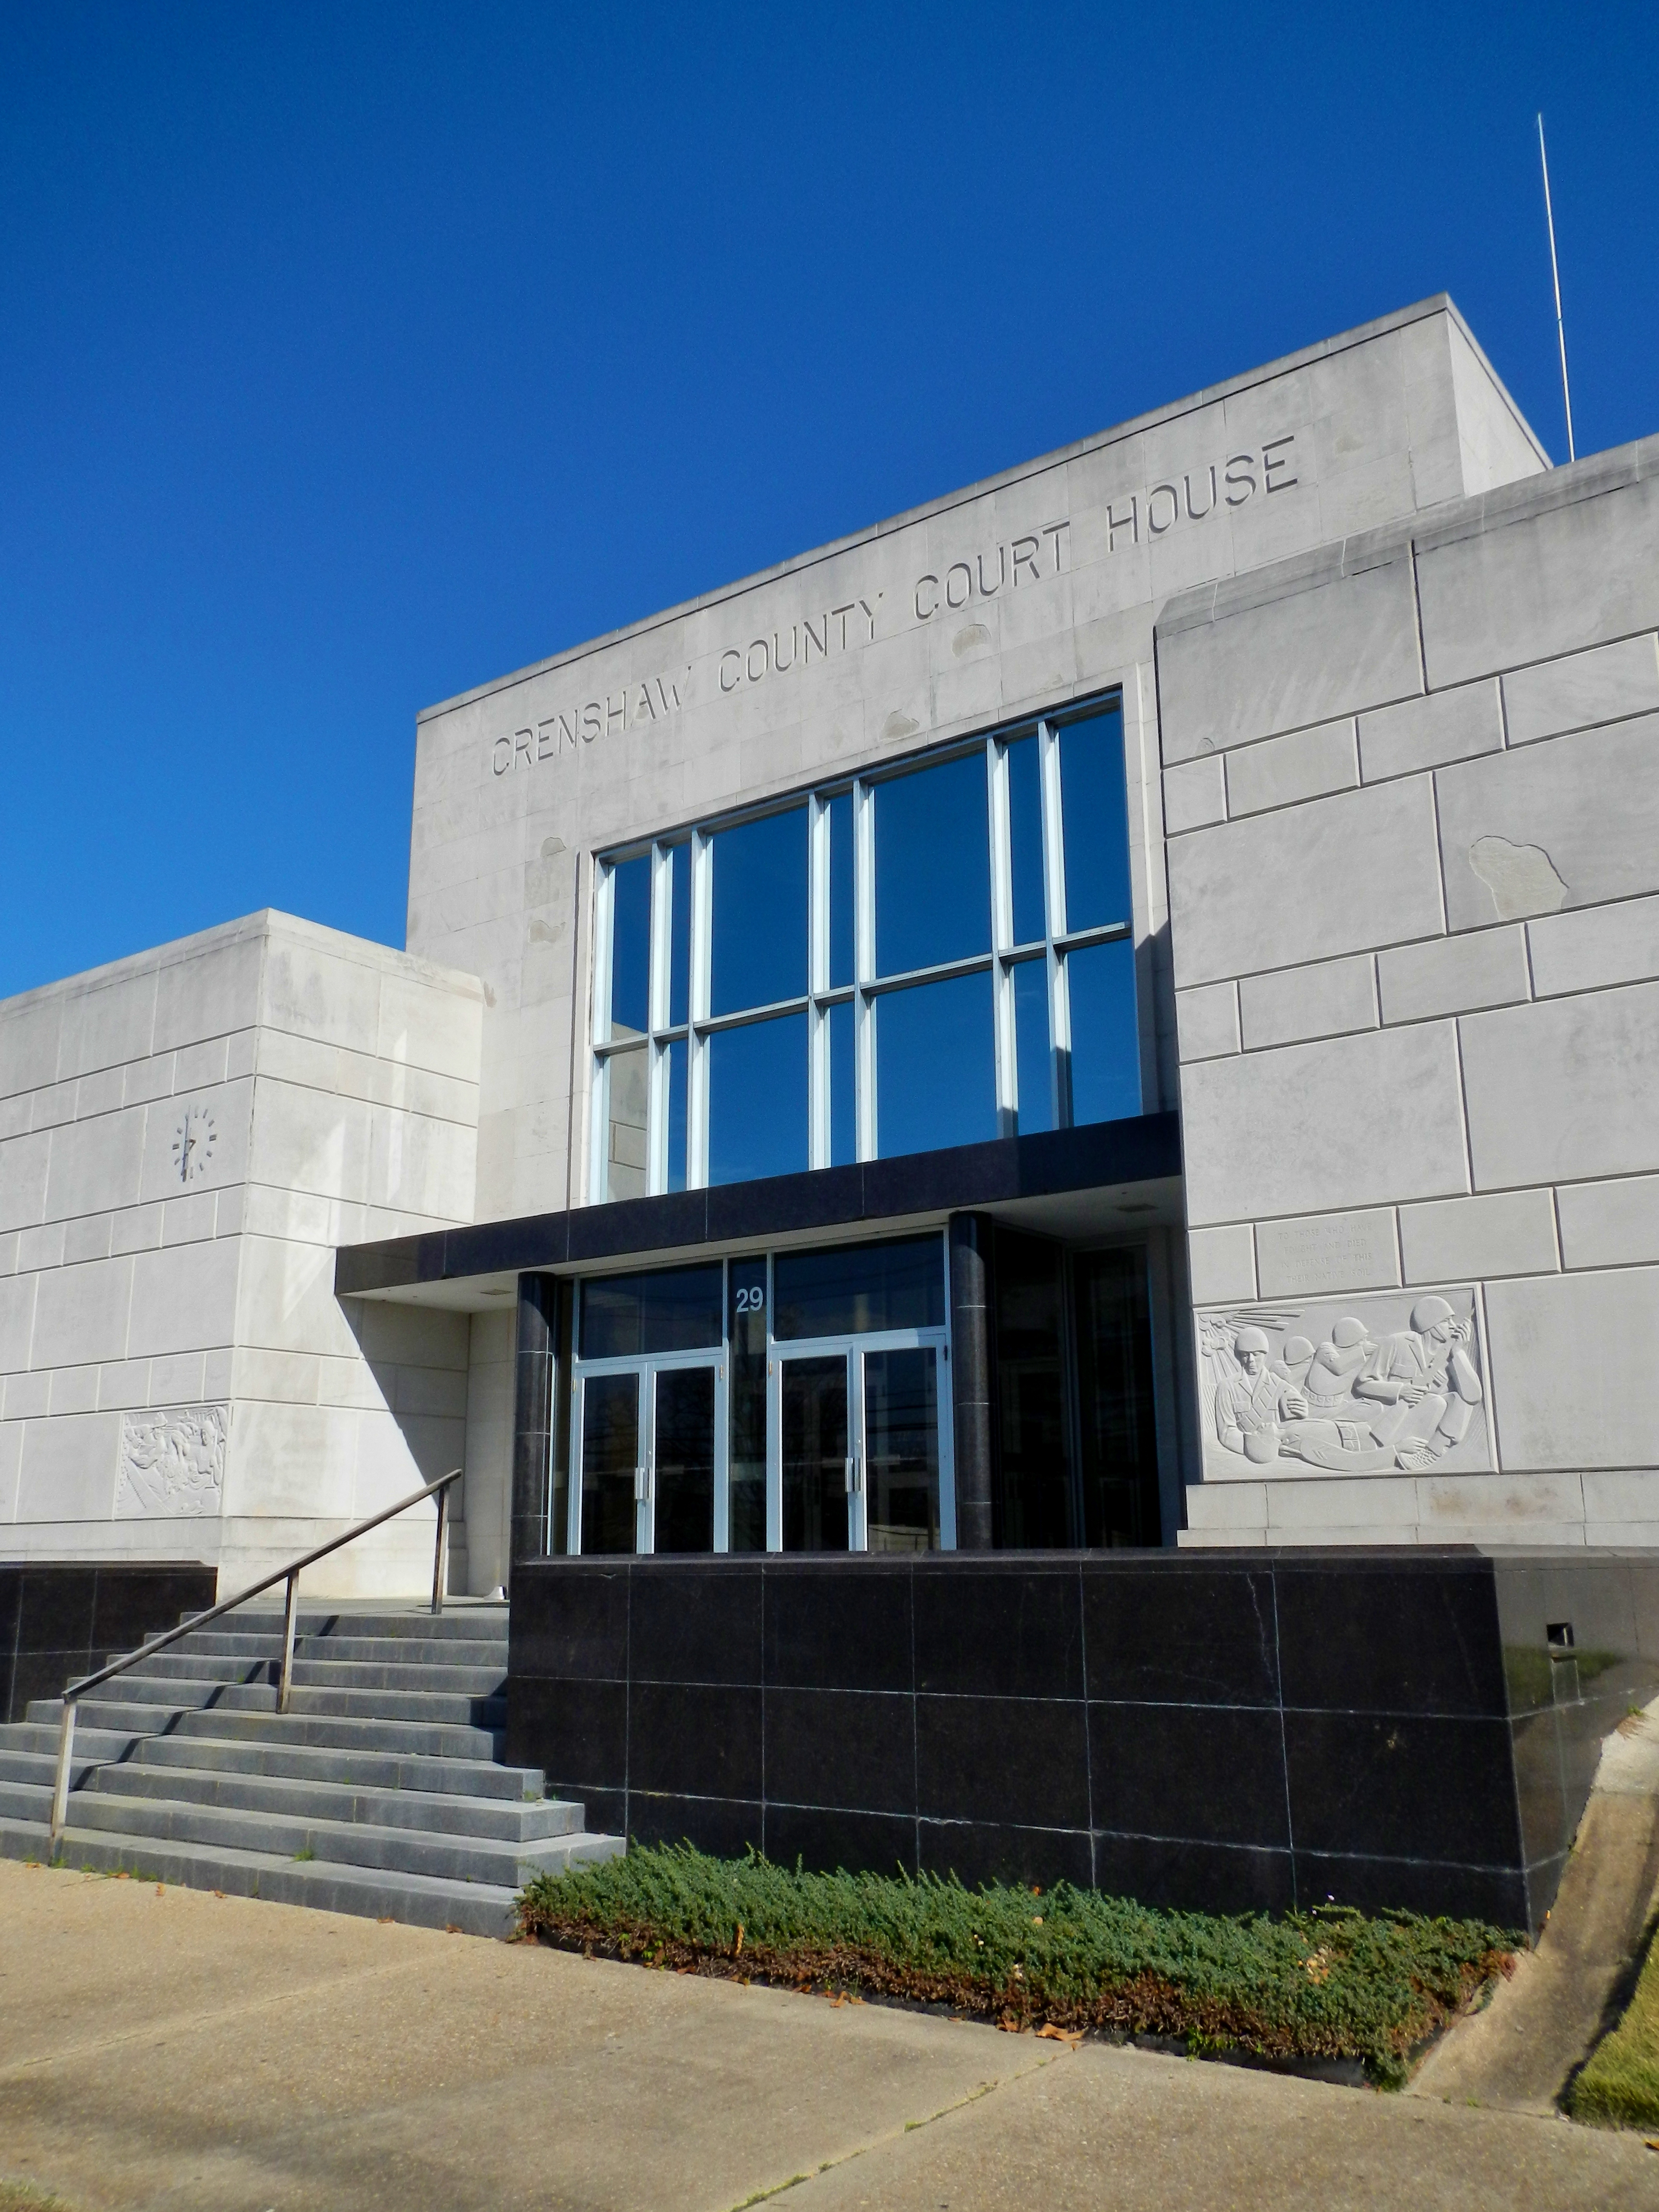 File:Crenshaw County Alabama Courthouse.JPG - Wikimedia Commonsbalance of crenshaw county